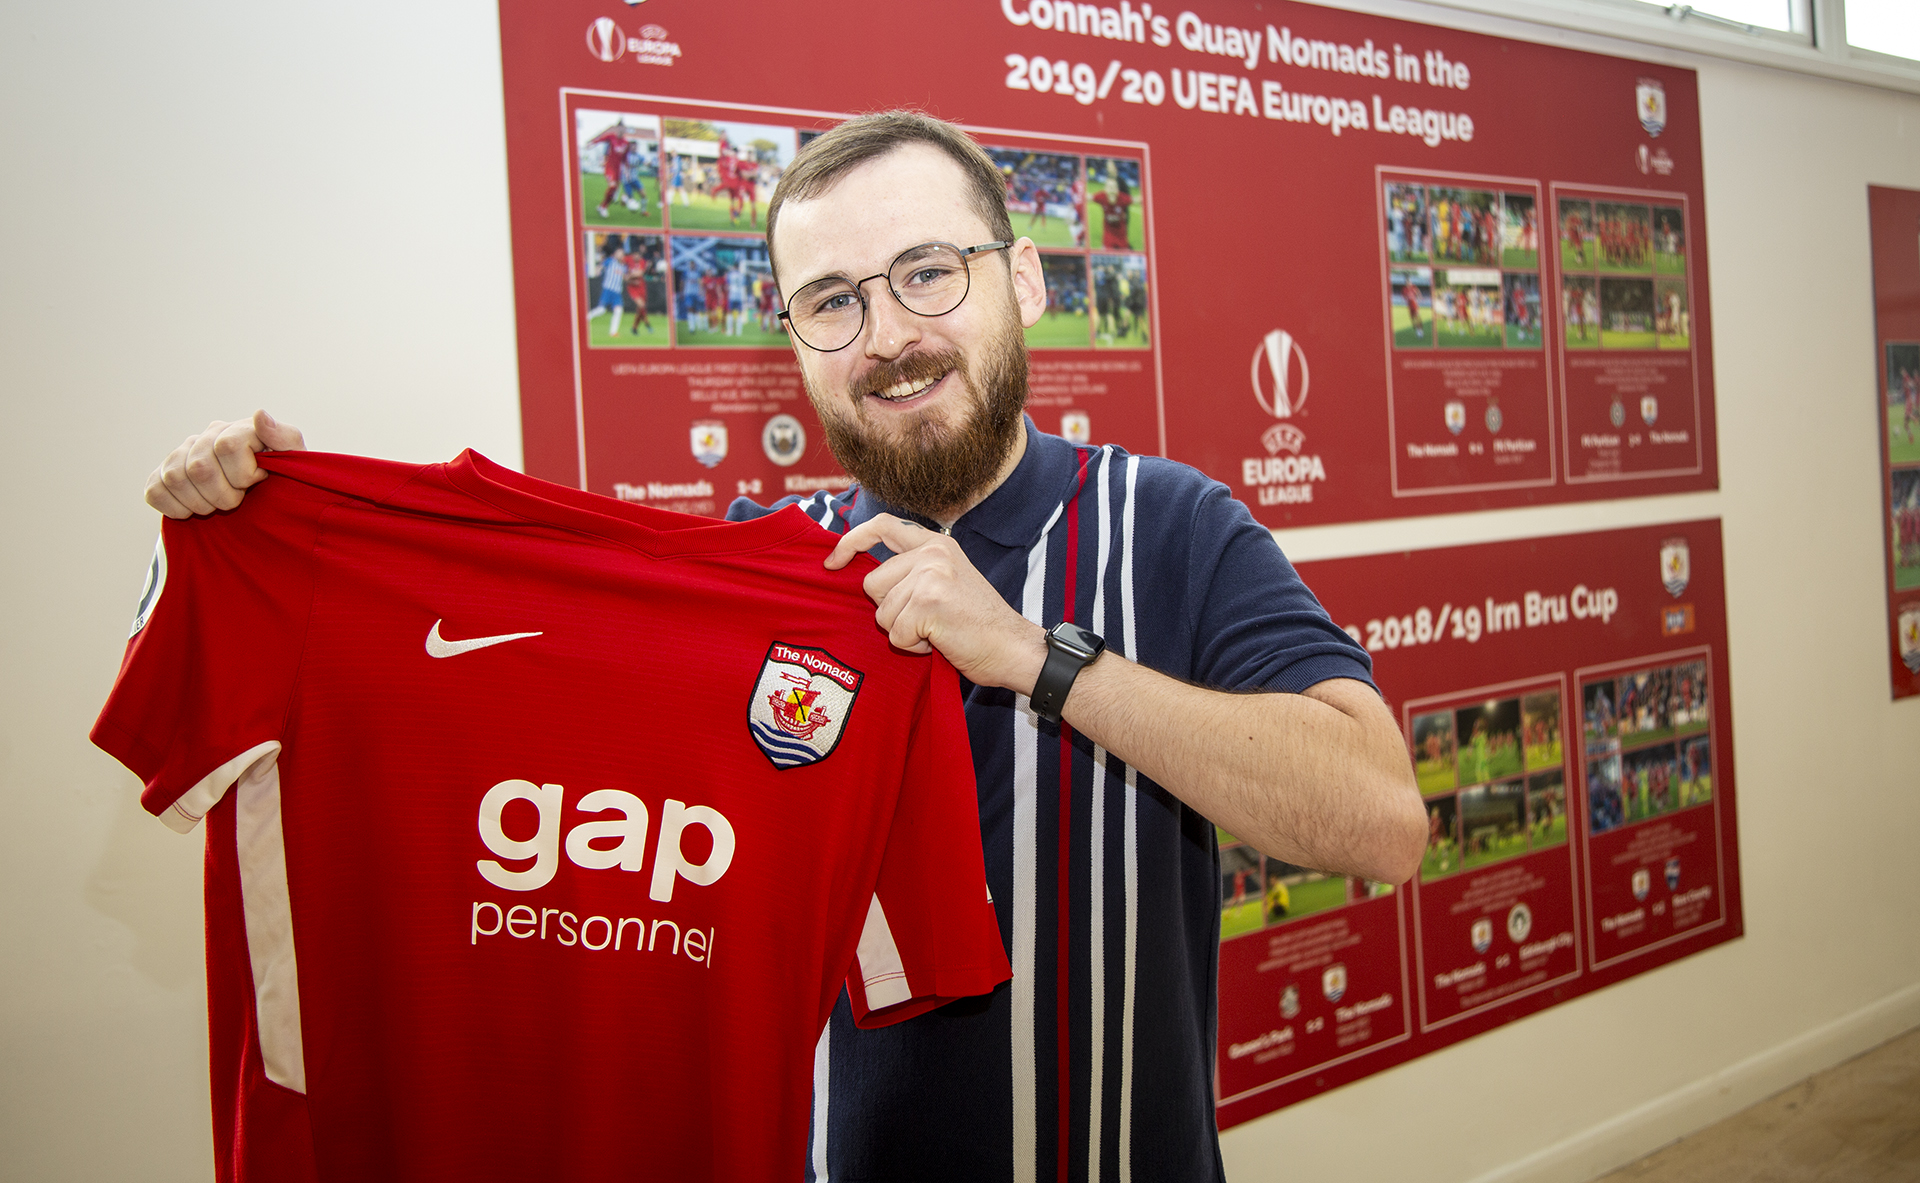 Jack Sargeant has joined the Connah's Quay Nomads board